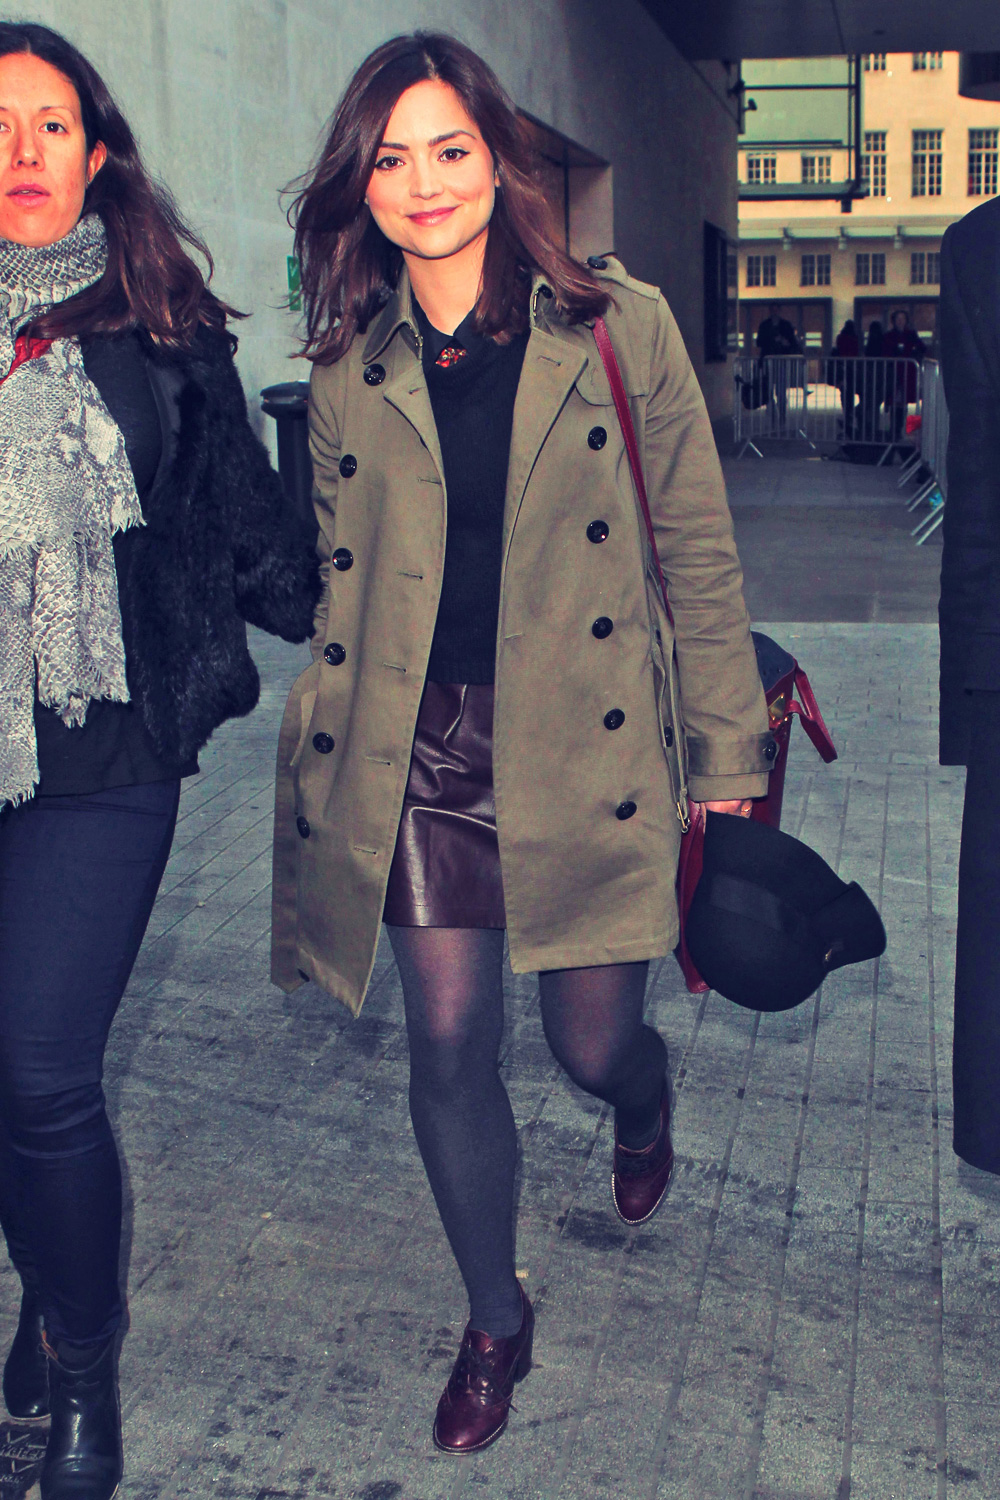 Jenna-Louise Coleman at the BBC Radio 1